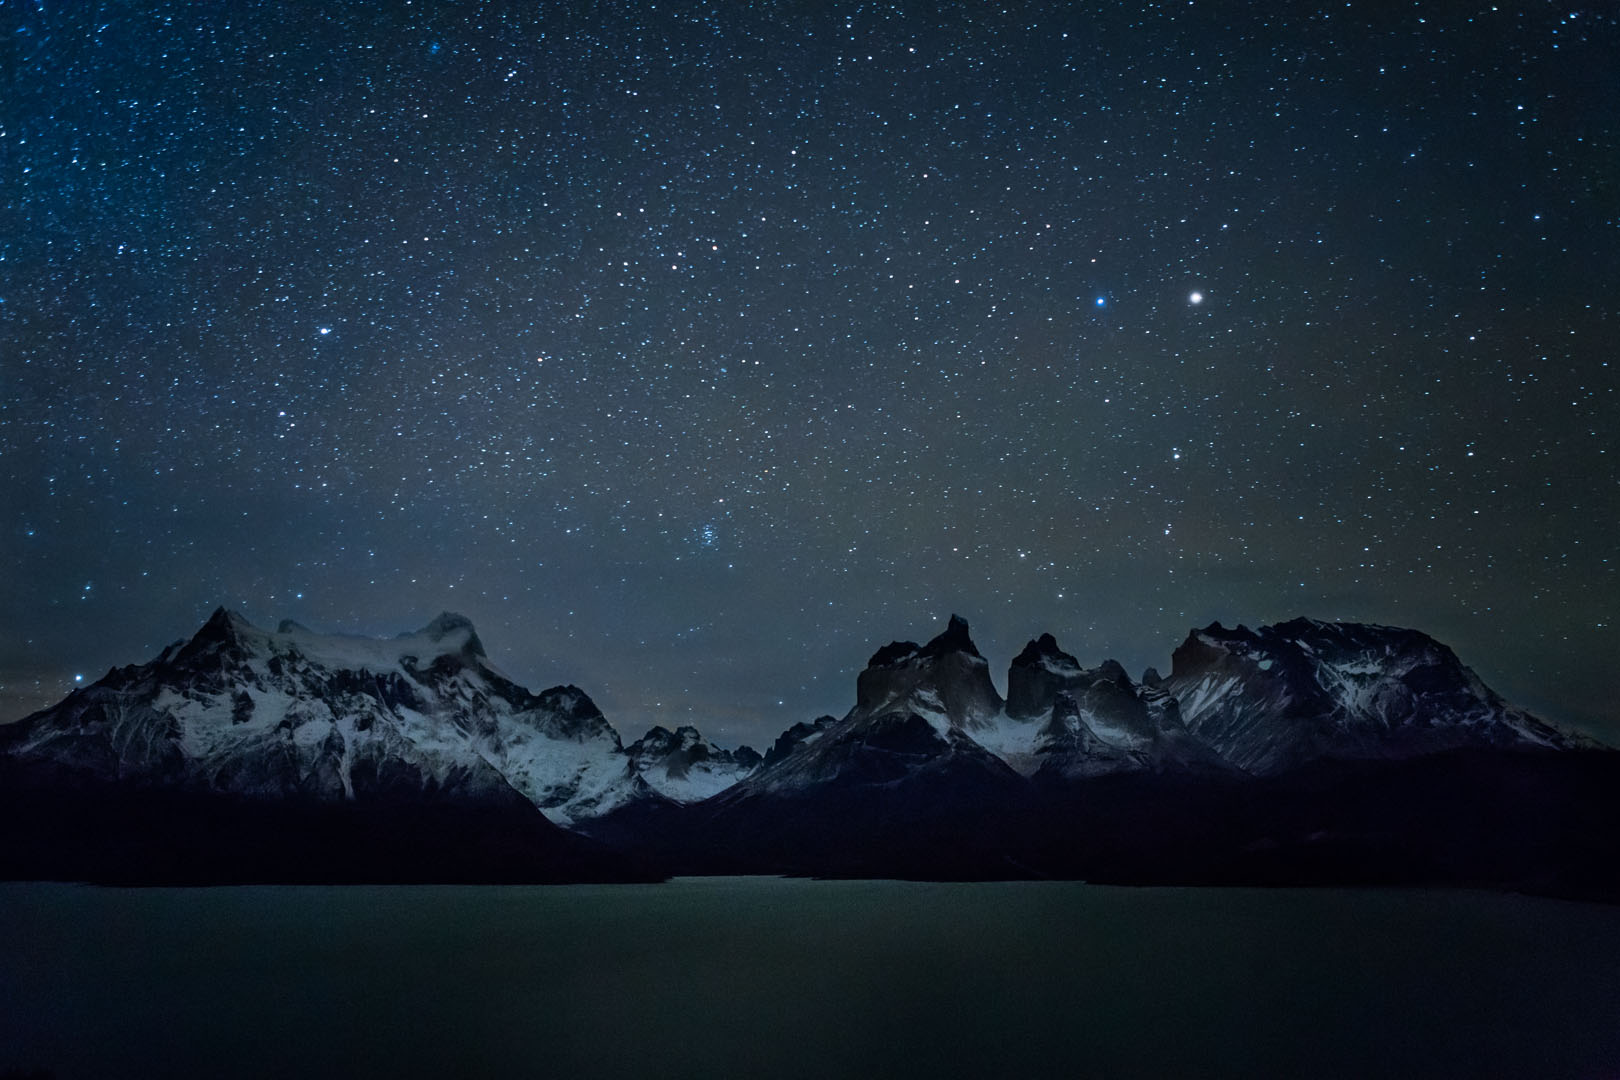 Patagonia, f/s.8, 25 seconds, ISO 6400,EF24-70mm f/2.8L USM at 24mm,Canon EOS 5D Mark III